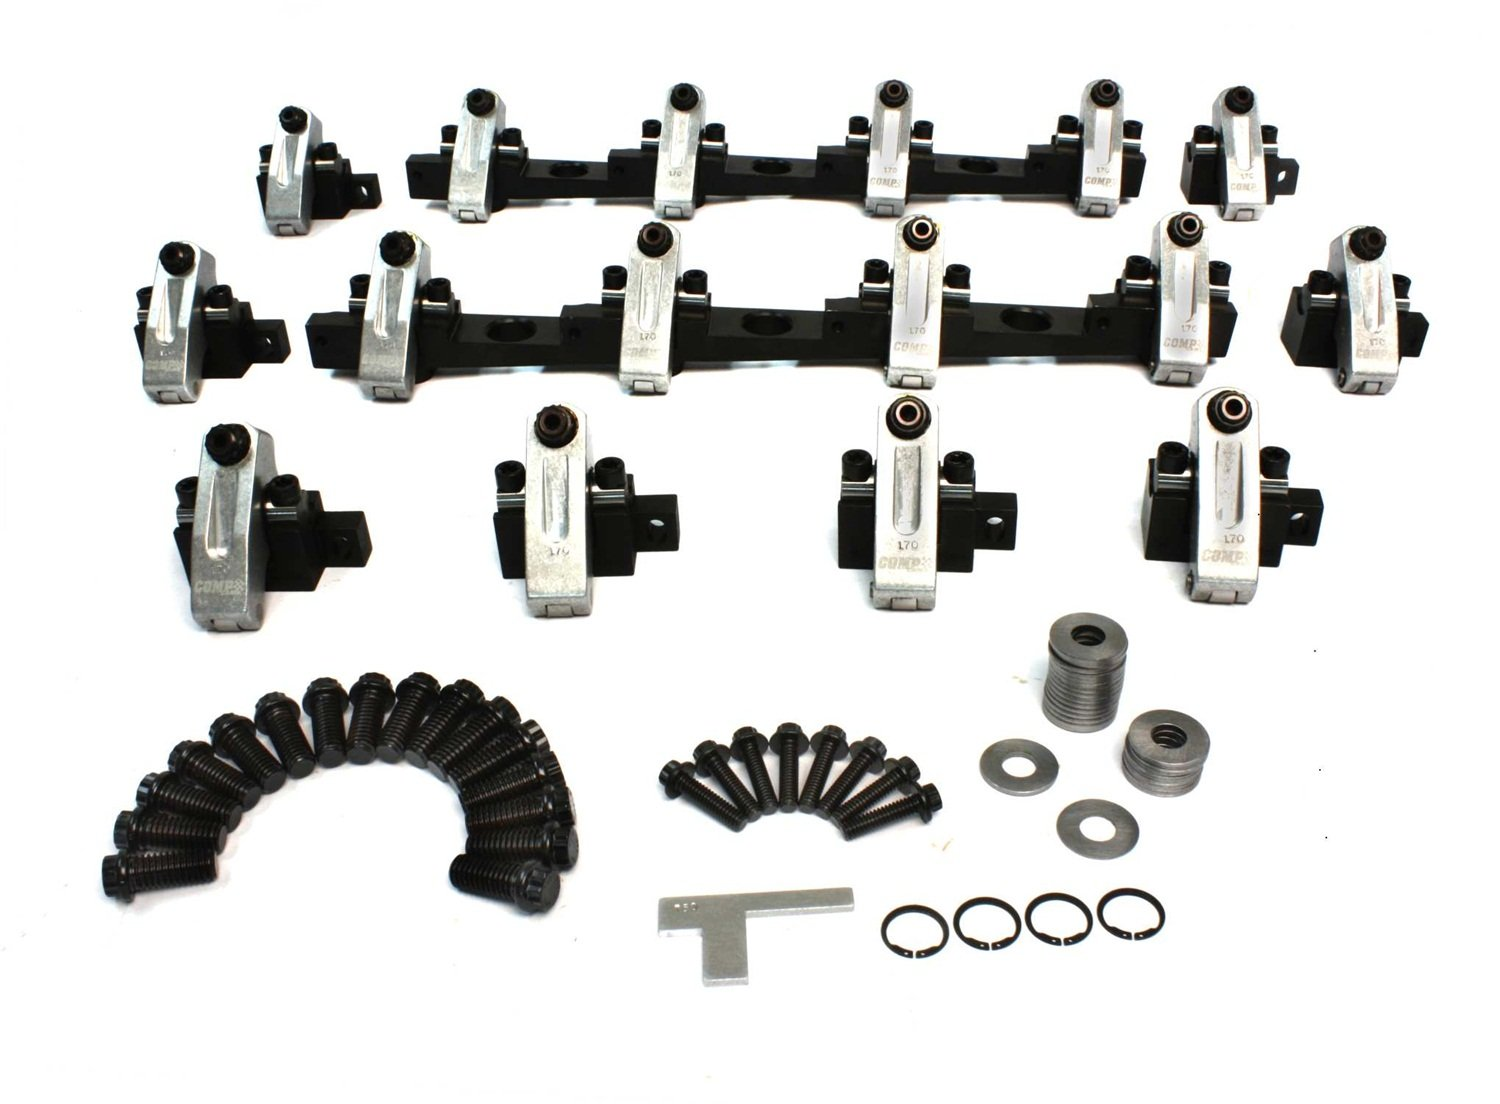 COMP Cams 1520 Shaft Rocker Set (Rhs Bbc 1.7/1.7)